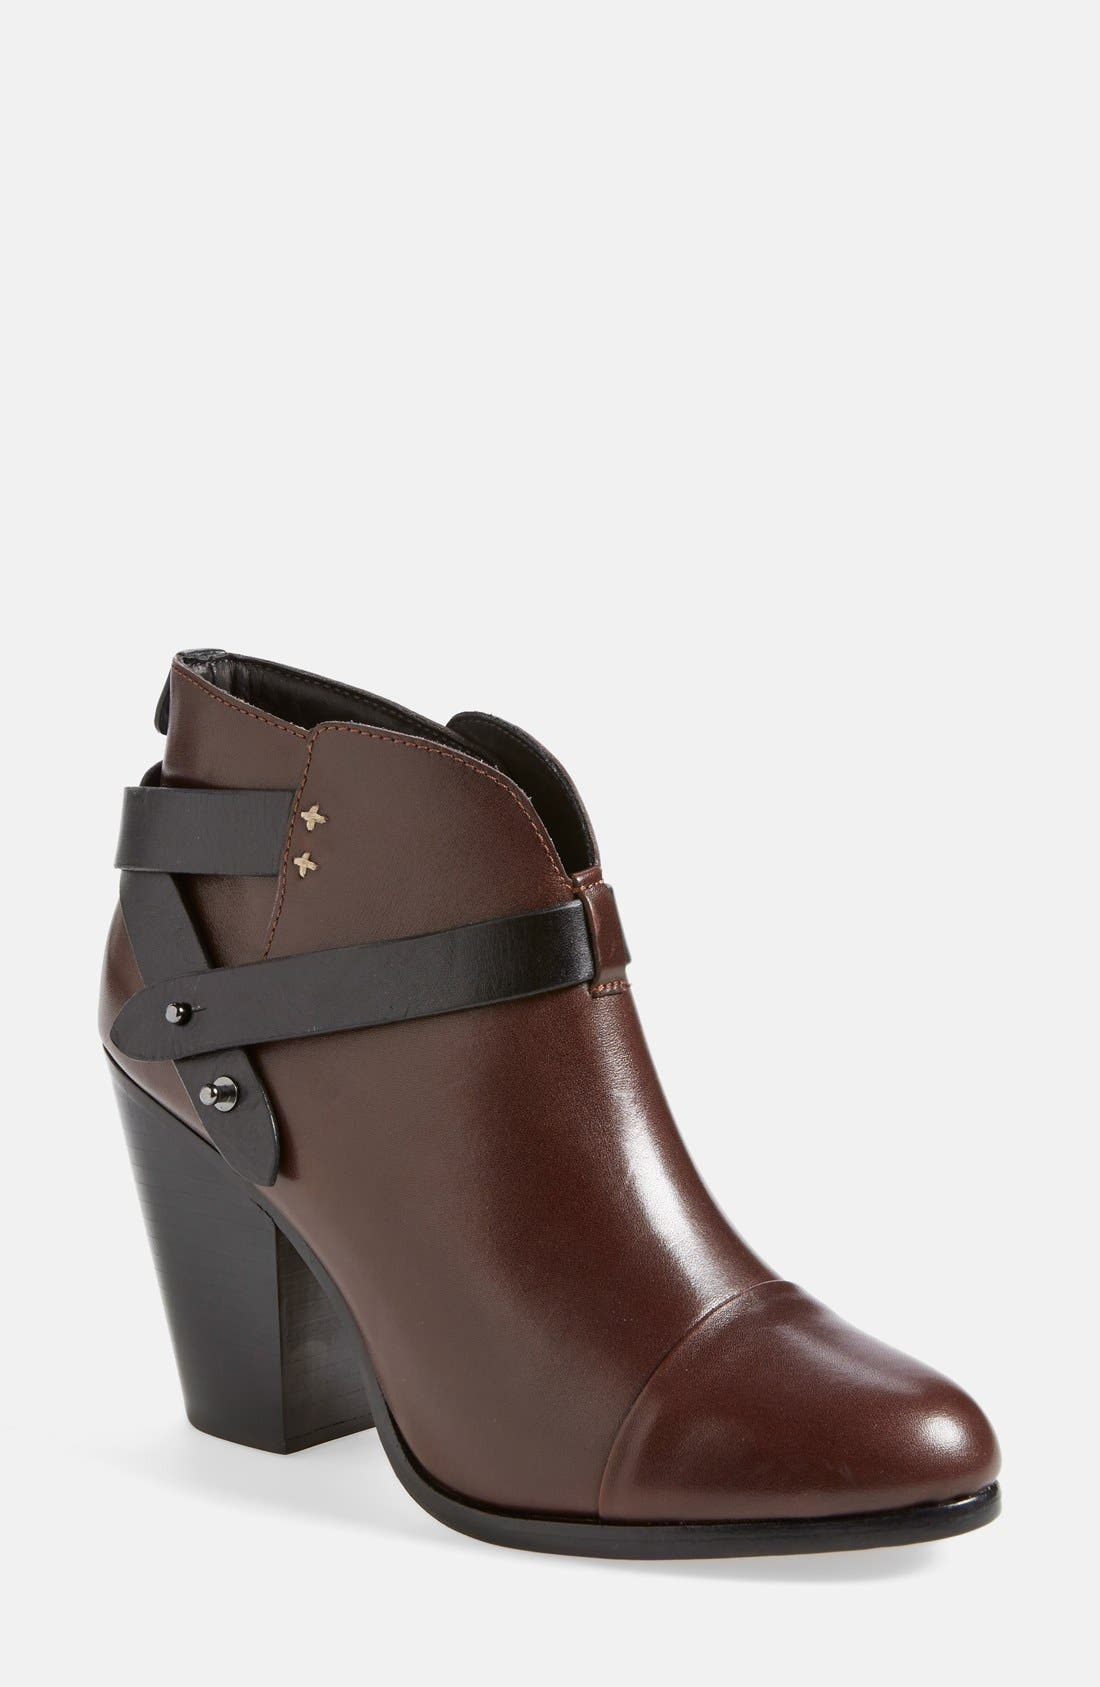 Main Image - rag & bone 'Harrow' Leather Boot (Women) (Nordstrom Exclusive)